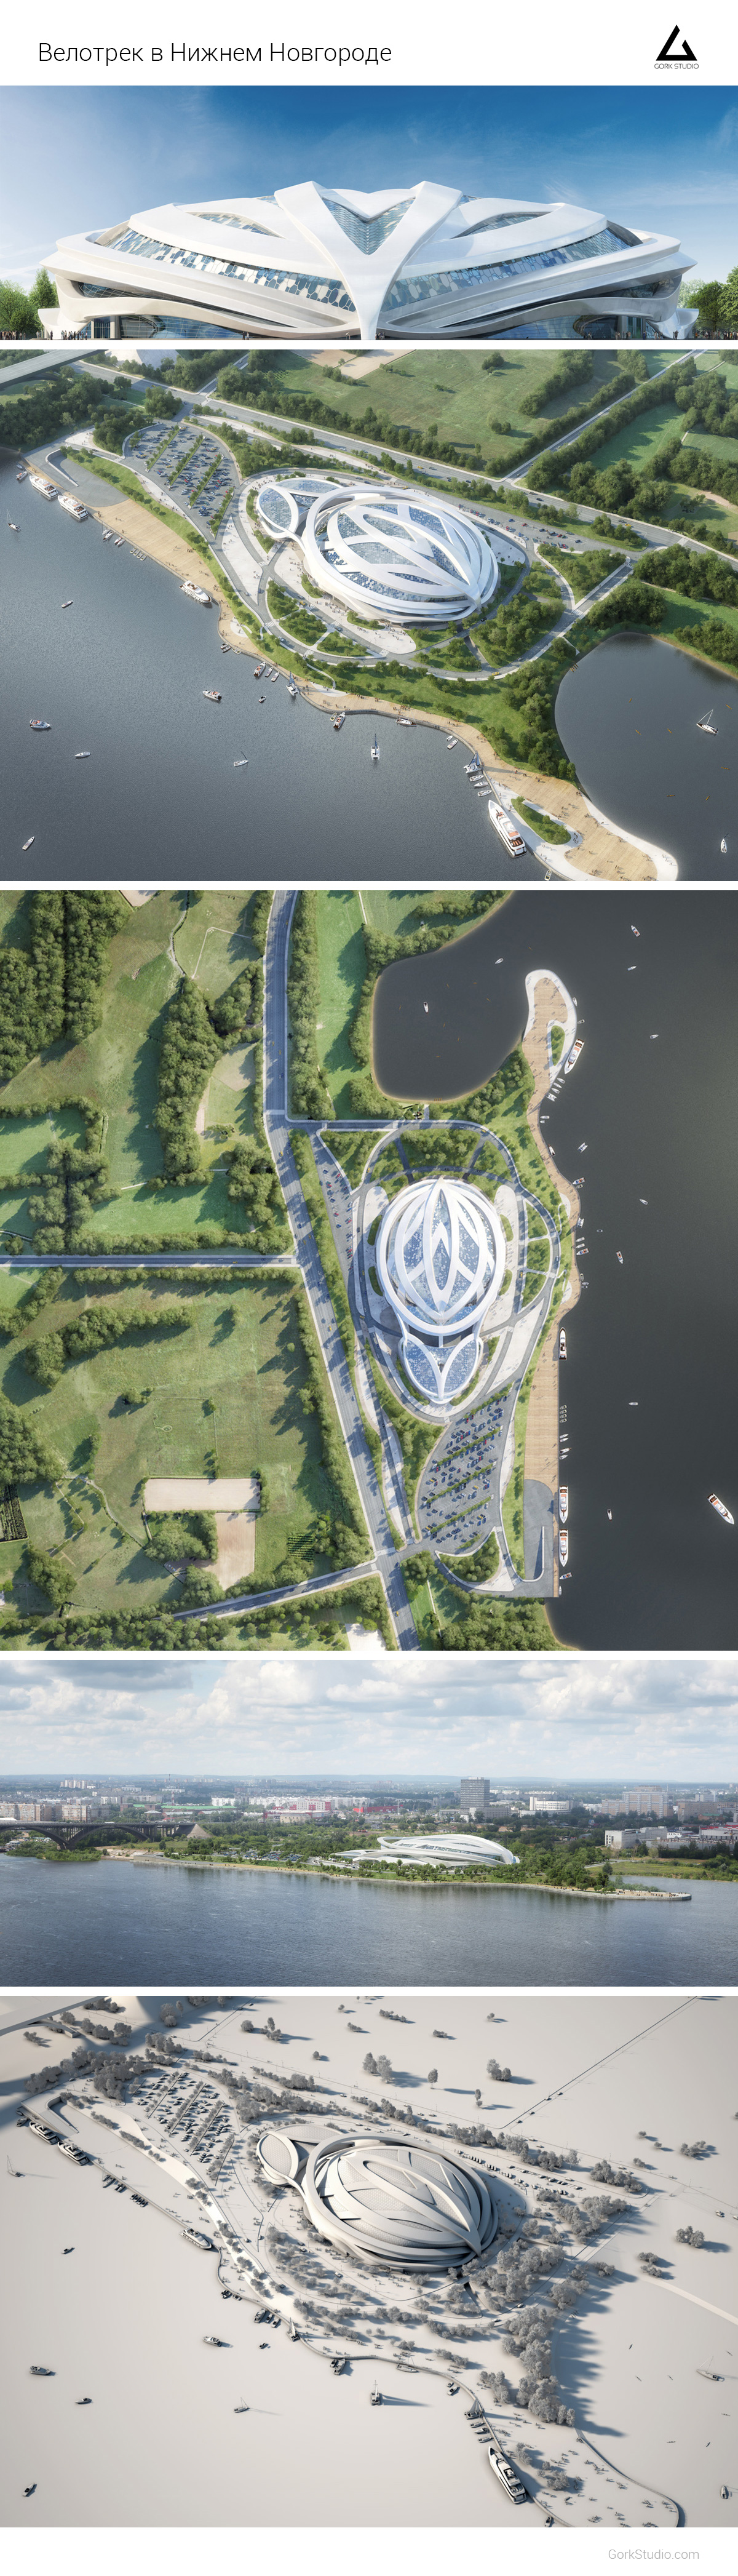 Cycle track is competitive development project area Oka Beach. Unique image of cycling helmet, stylish and fits in the bottom of the panorama of the city of Nizhny Novgorod.  Architect Vinogradova D.